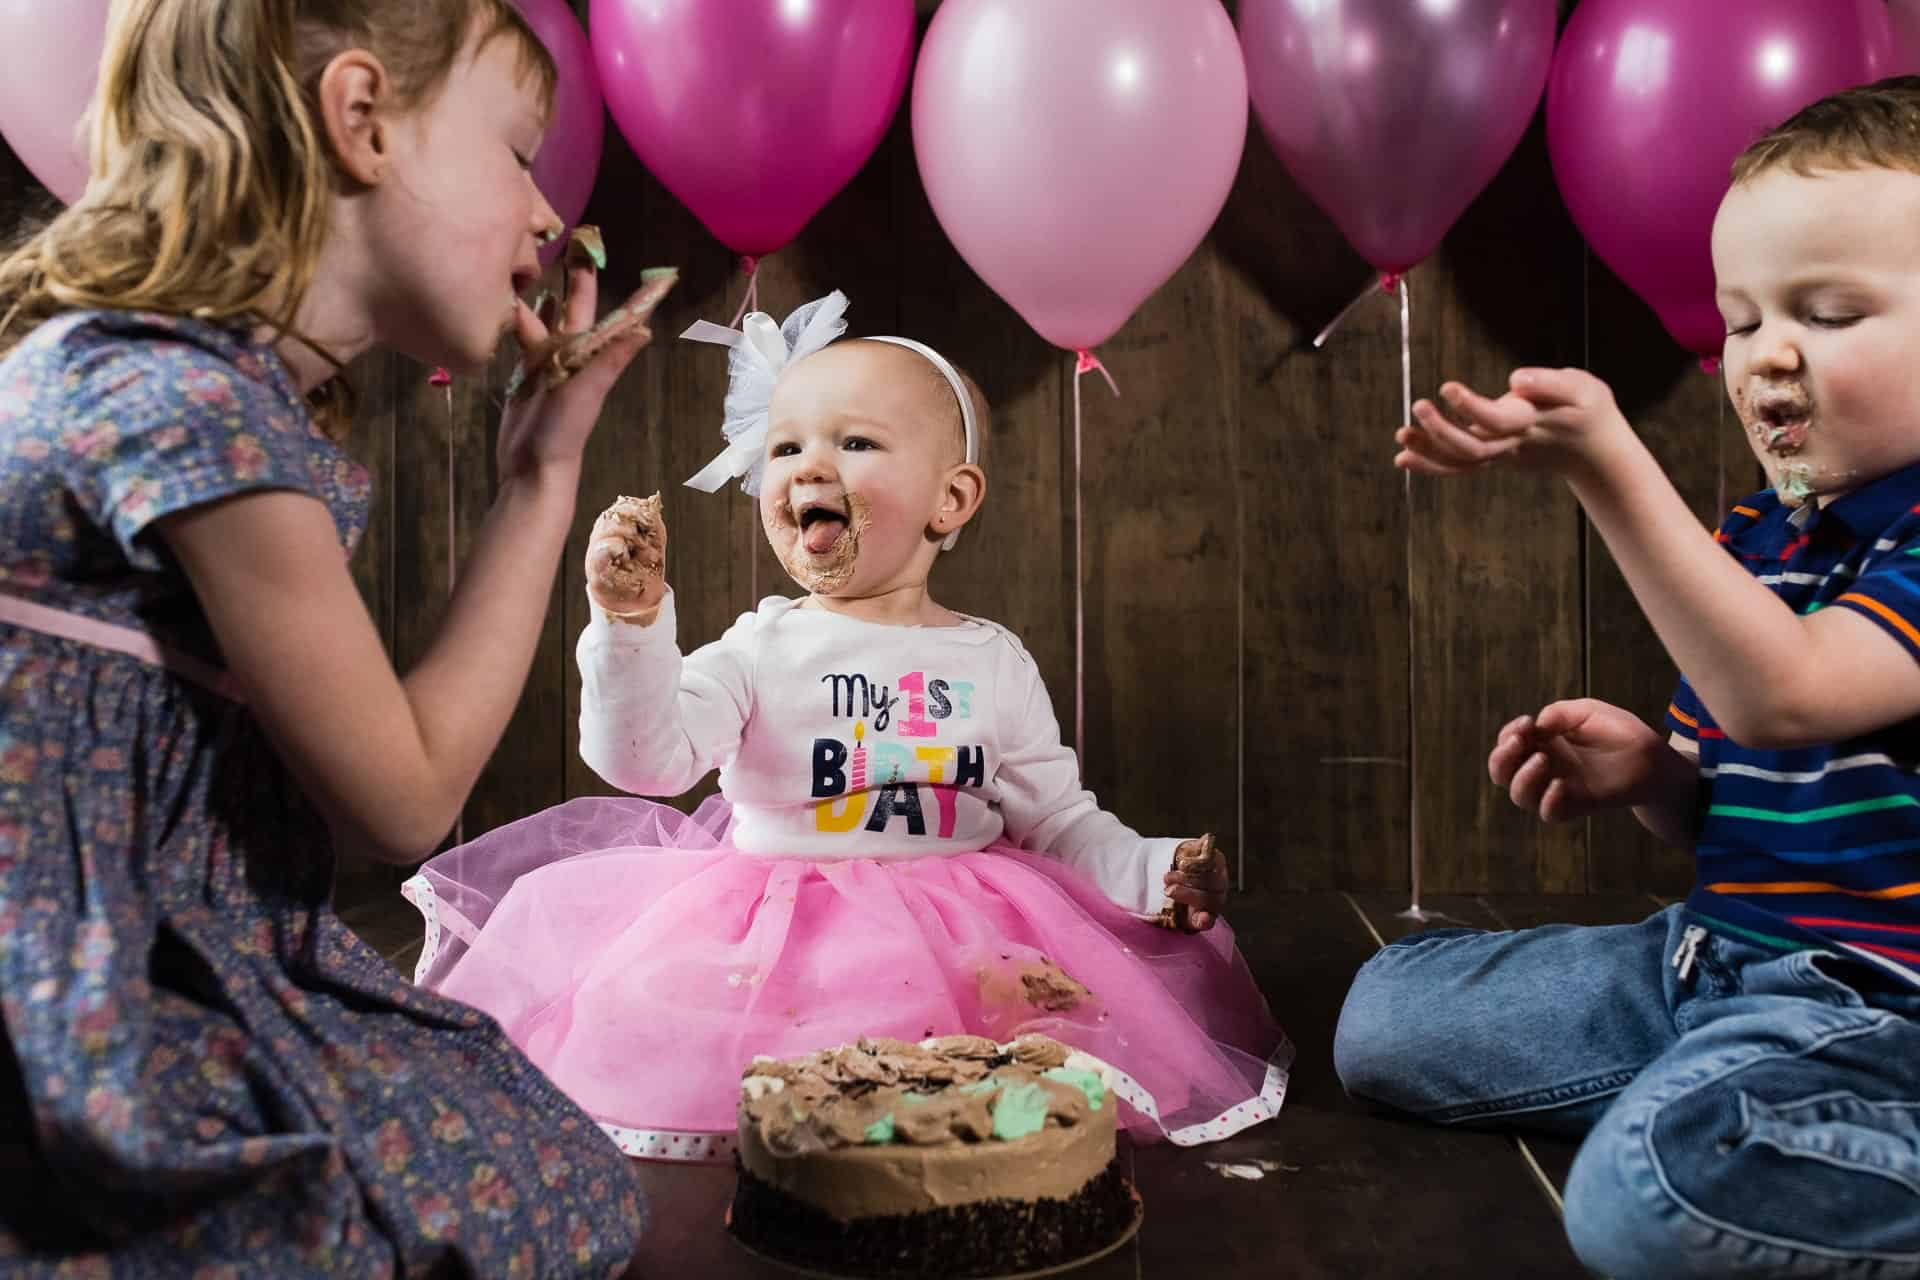 three siblings doing a cake smash together in front of pink balloons